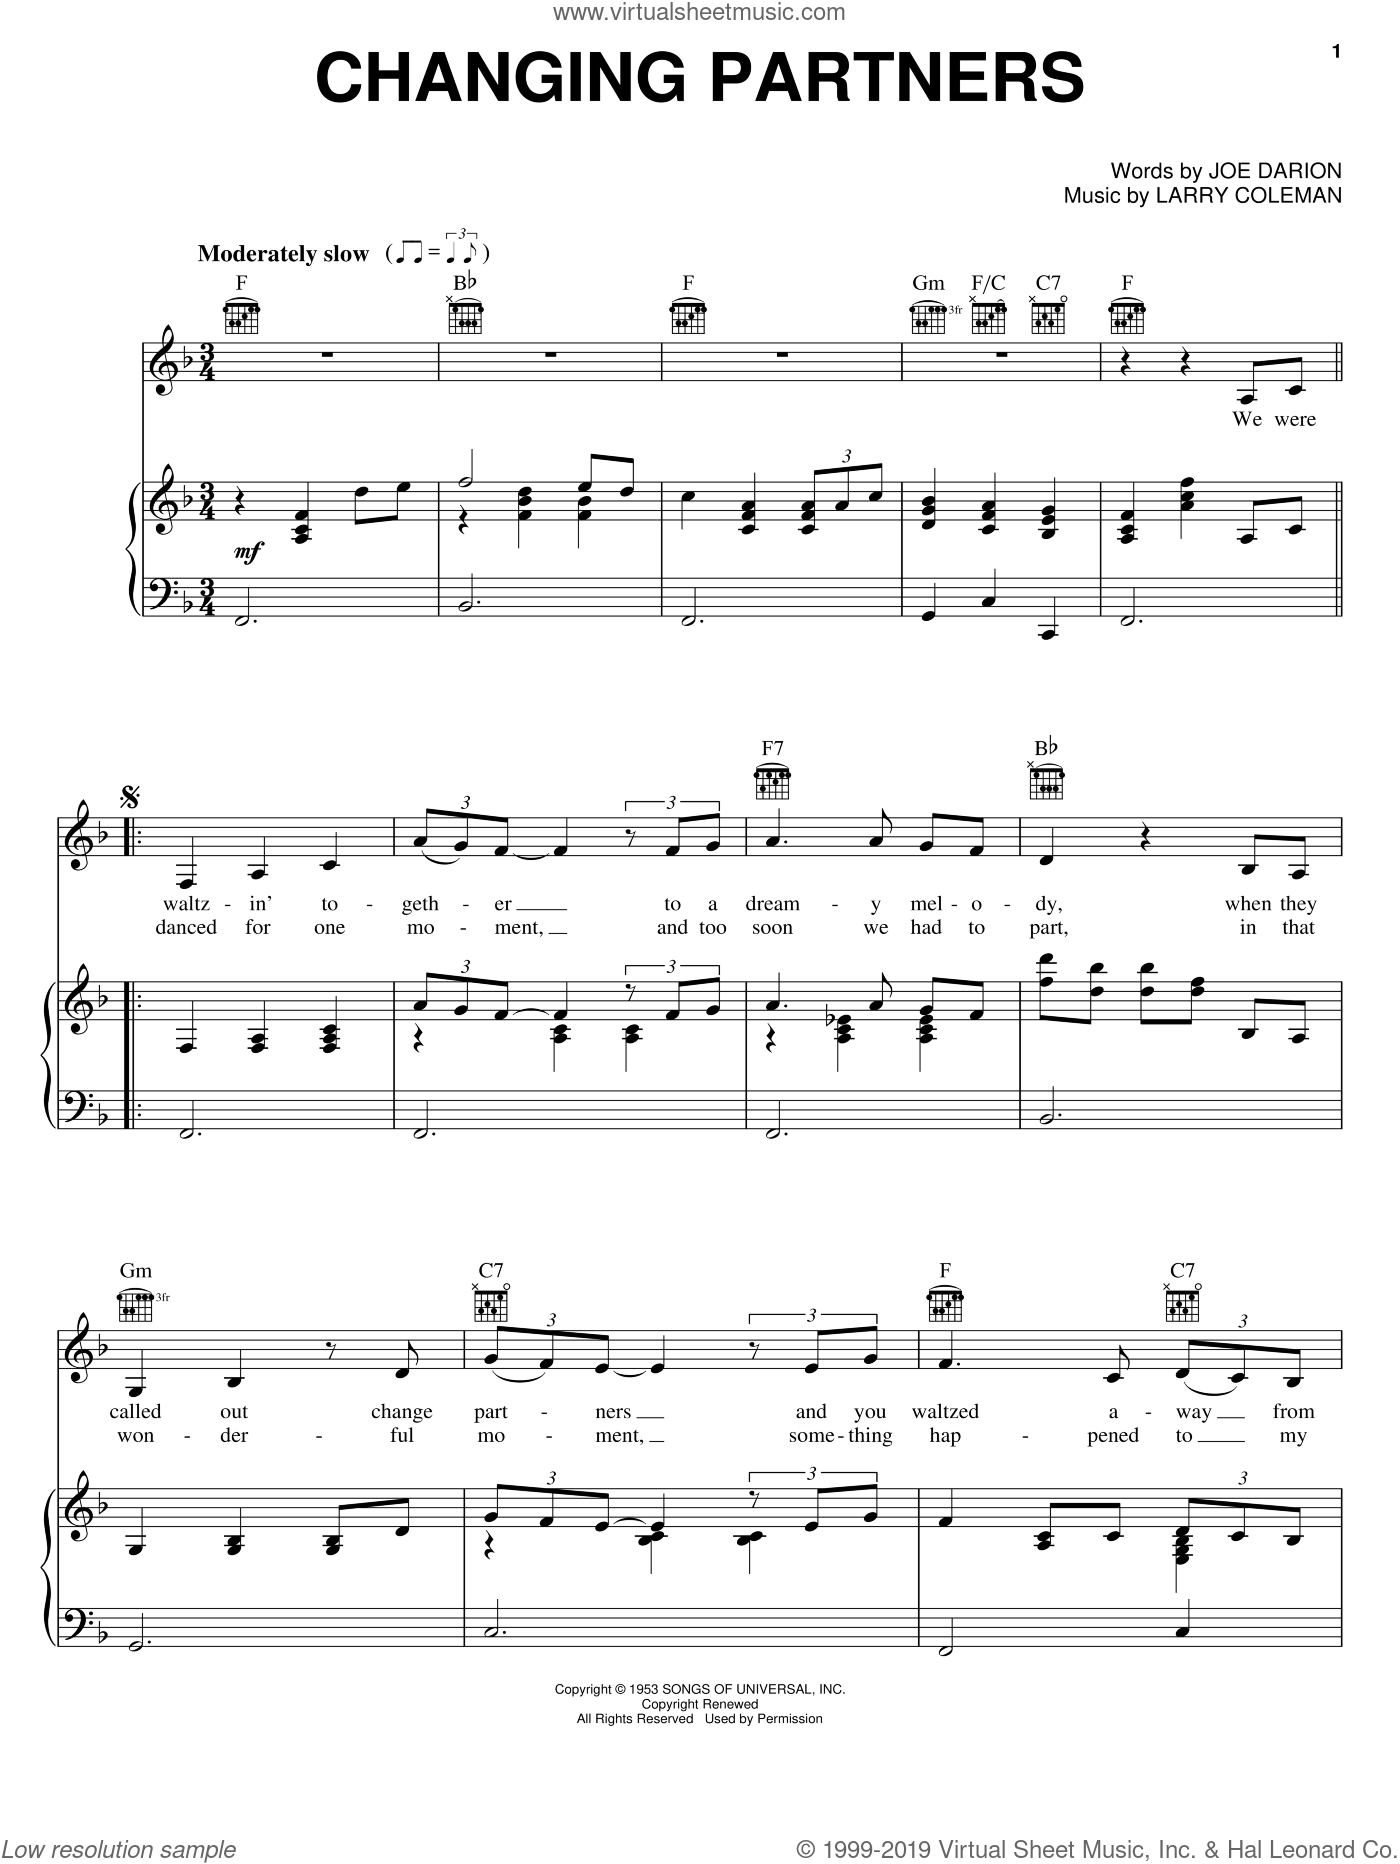 Changing Partners sheet music for voice, piano or guitar by Larry Coleman, Bing Crosby, Patti Page and Joe Darion. Score Image Preview.